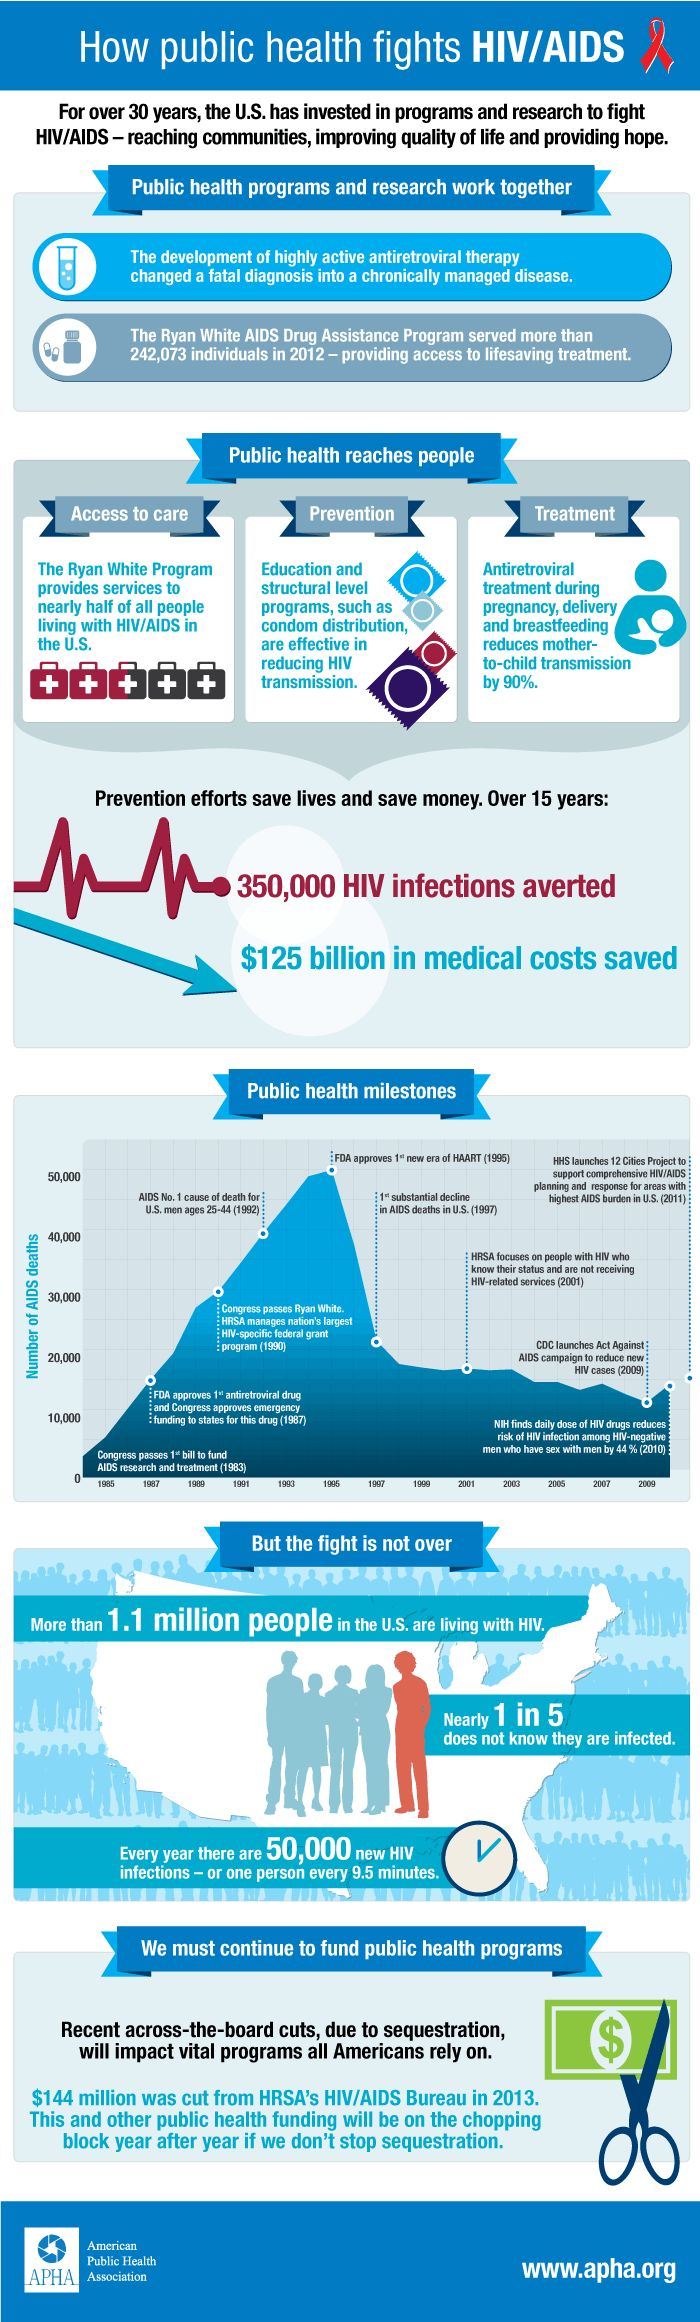 HIV/AIDS infographic and Public health